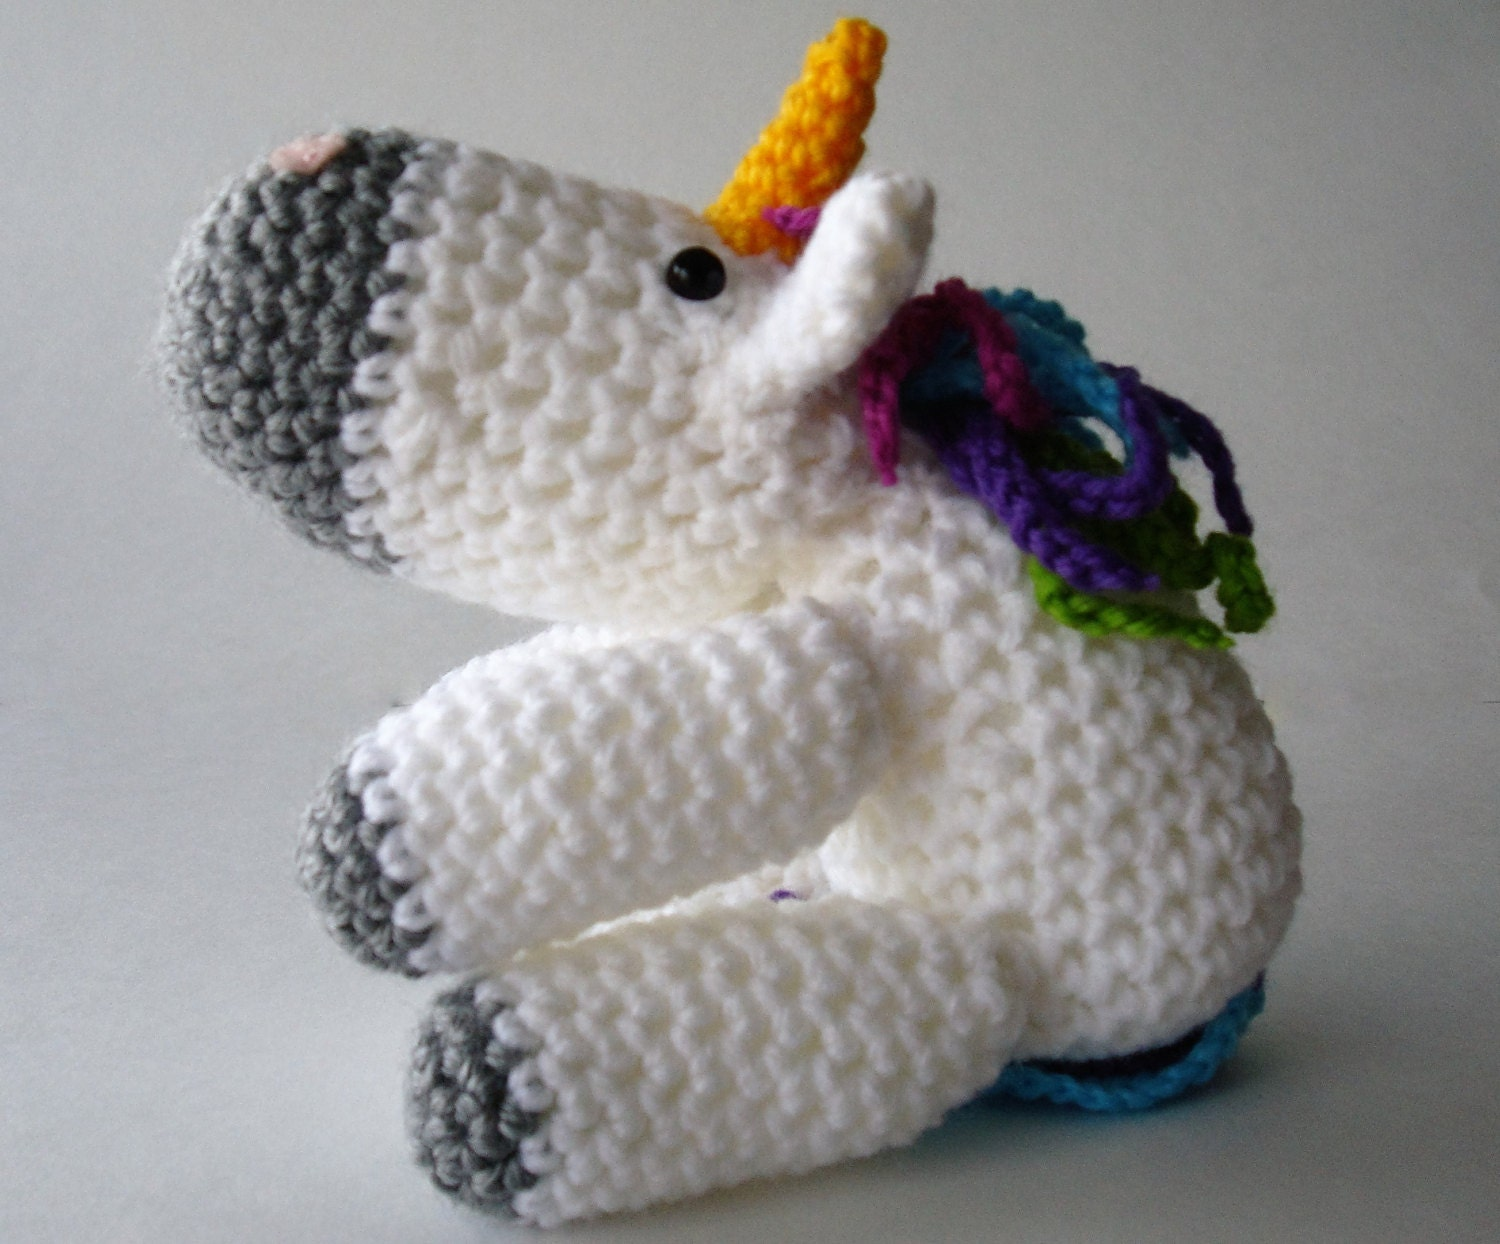 Unicorn Amigurumi Yarn Yard : Crocheted unicorn amigurumi unicorn Stuffed white and grey